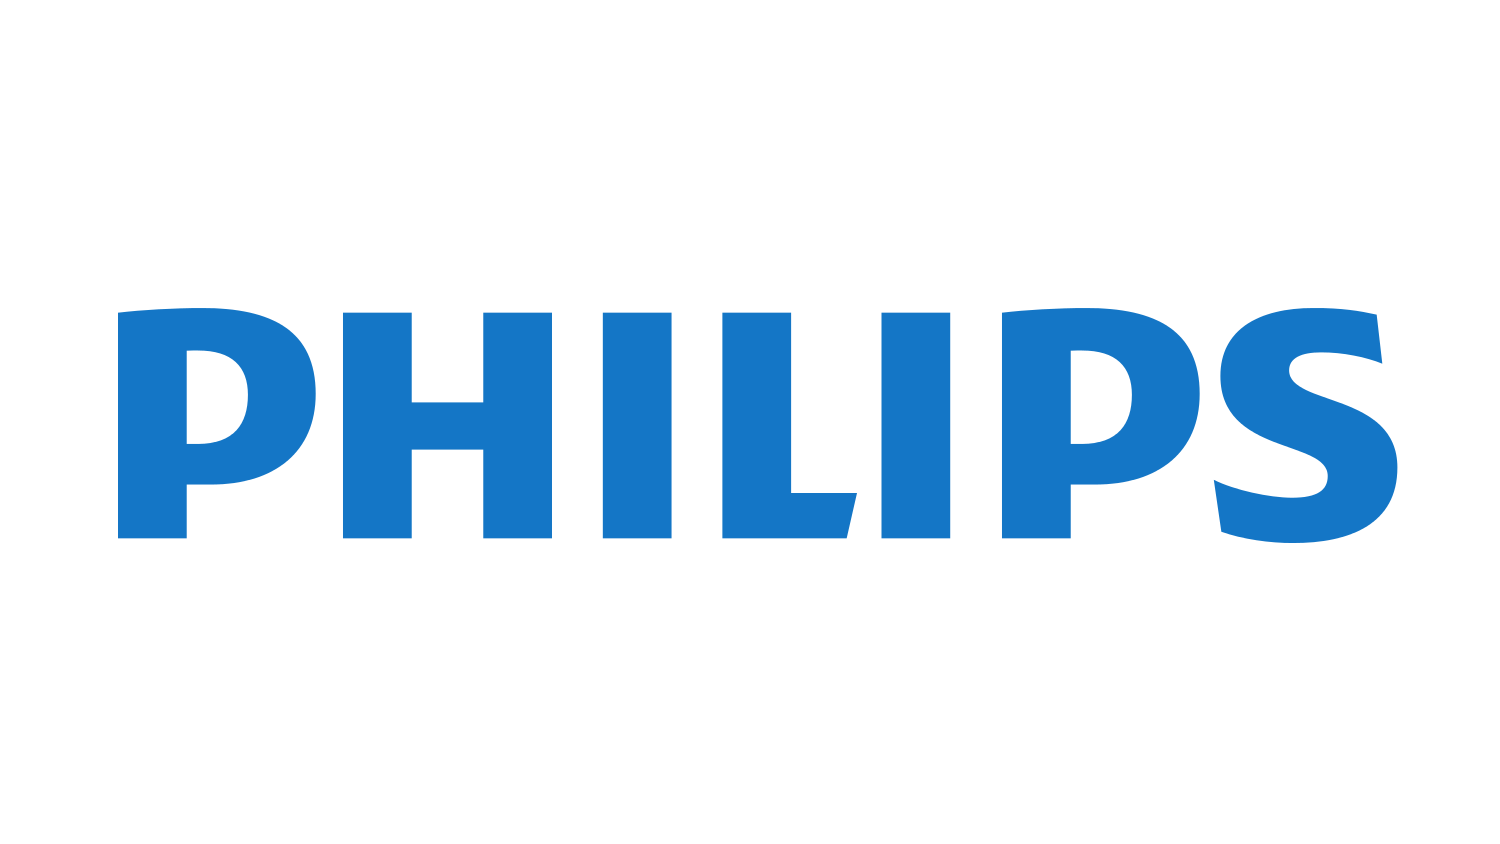 PhilipsCompanyLogotype